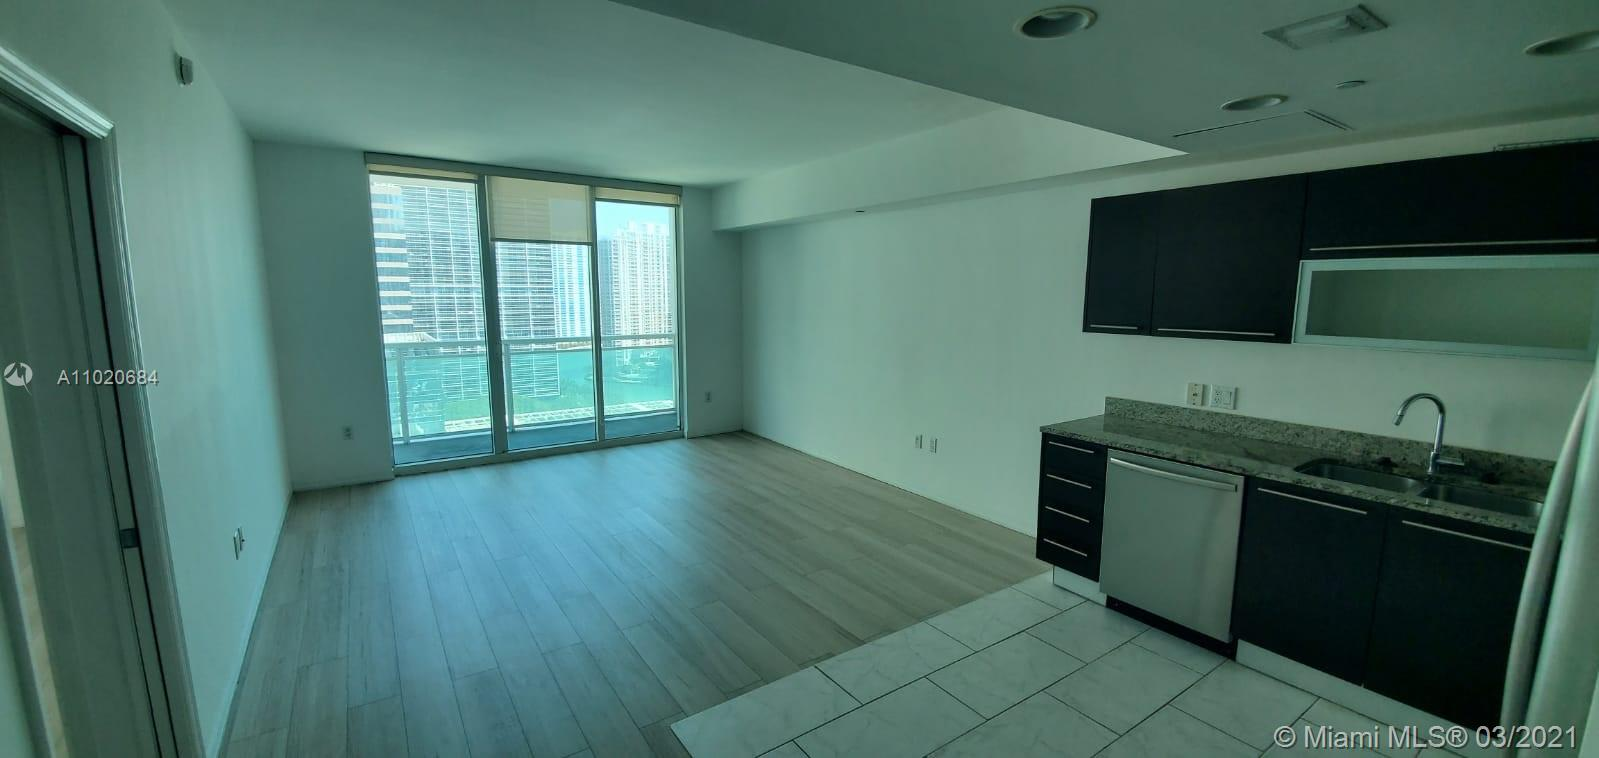 The Plaza on Brickell 1 #2308 - 950 Brickell Bay Dr #2308, Miami, FL 33131